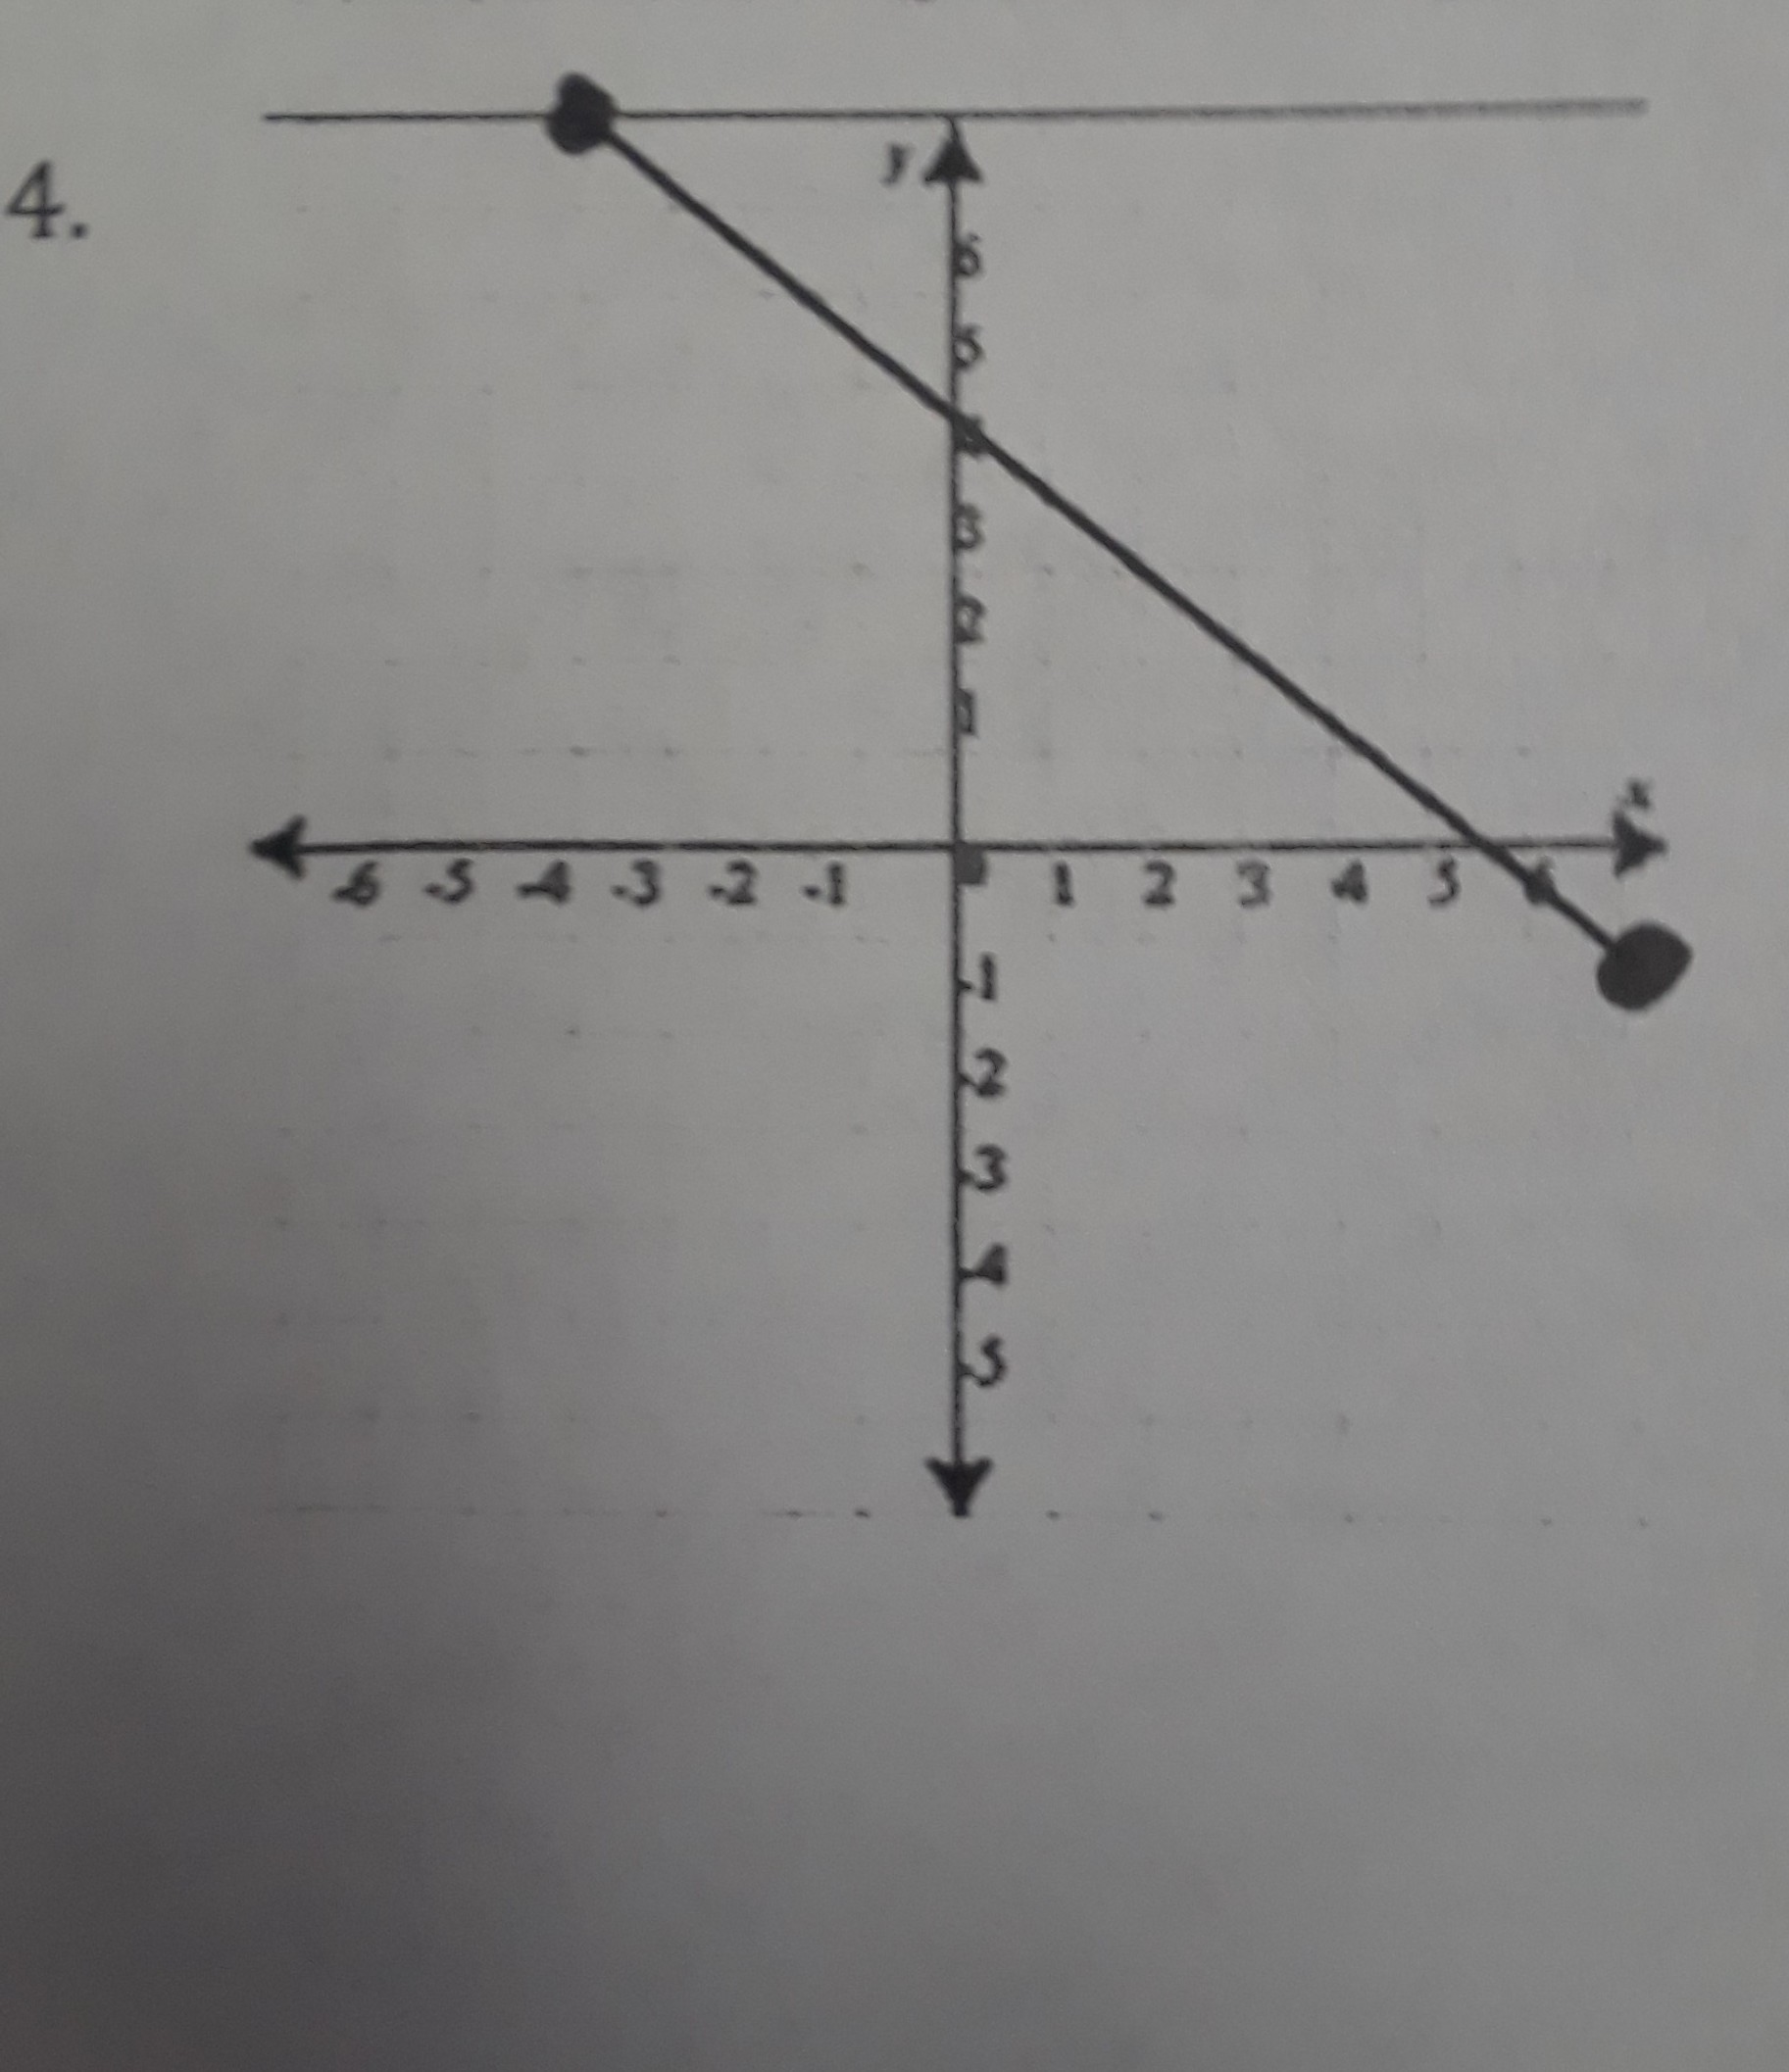 Is This Graph Continous Or Discrete